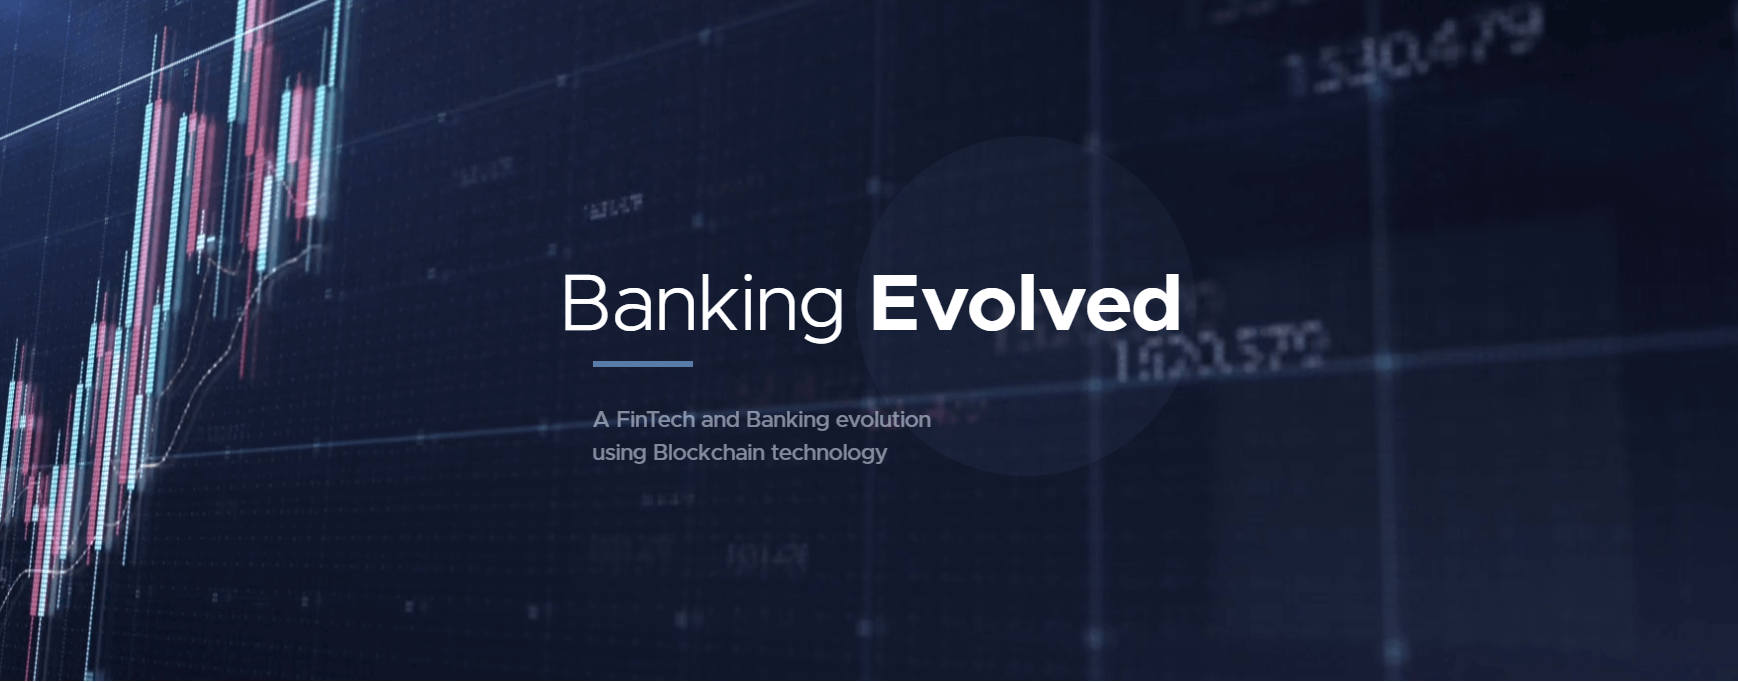 BankSocial Completes Ecosystem Upgrade & Relaunches as BSL on the Binance Smart Chain